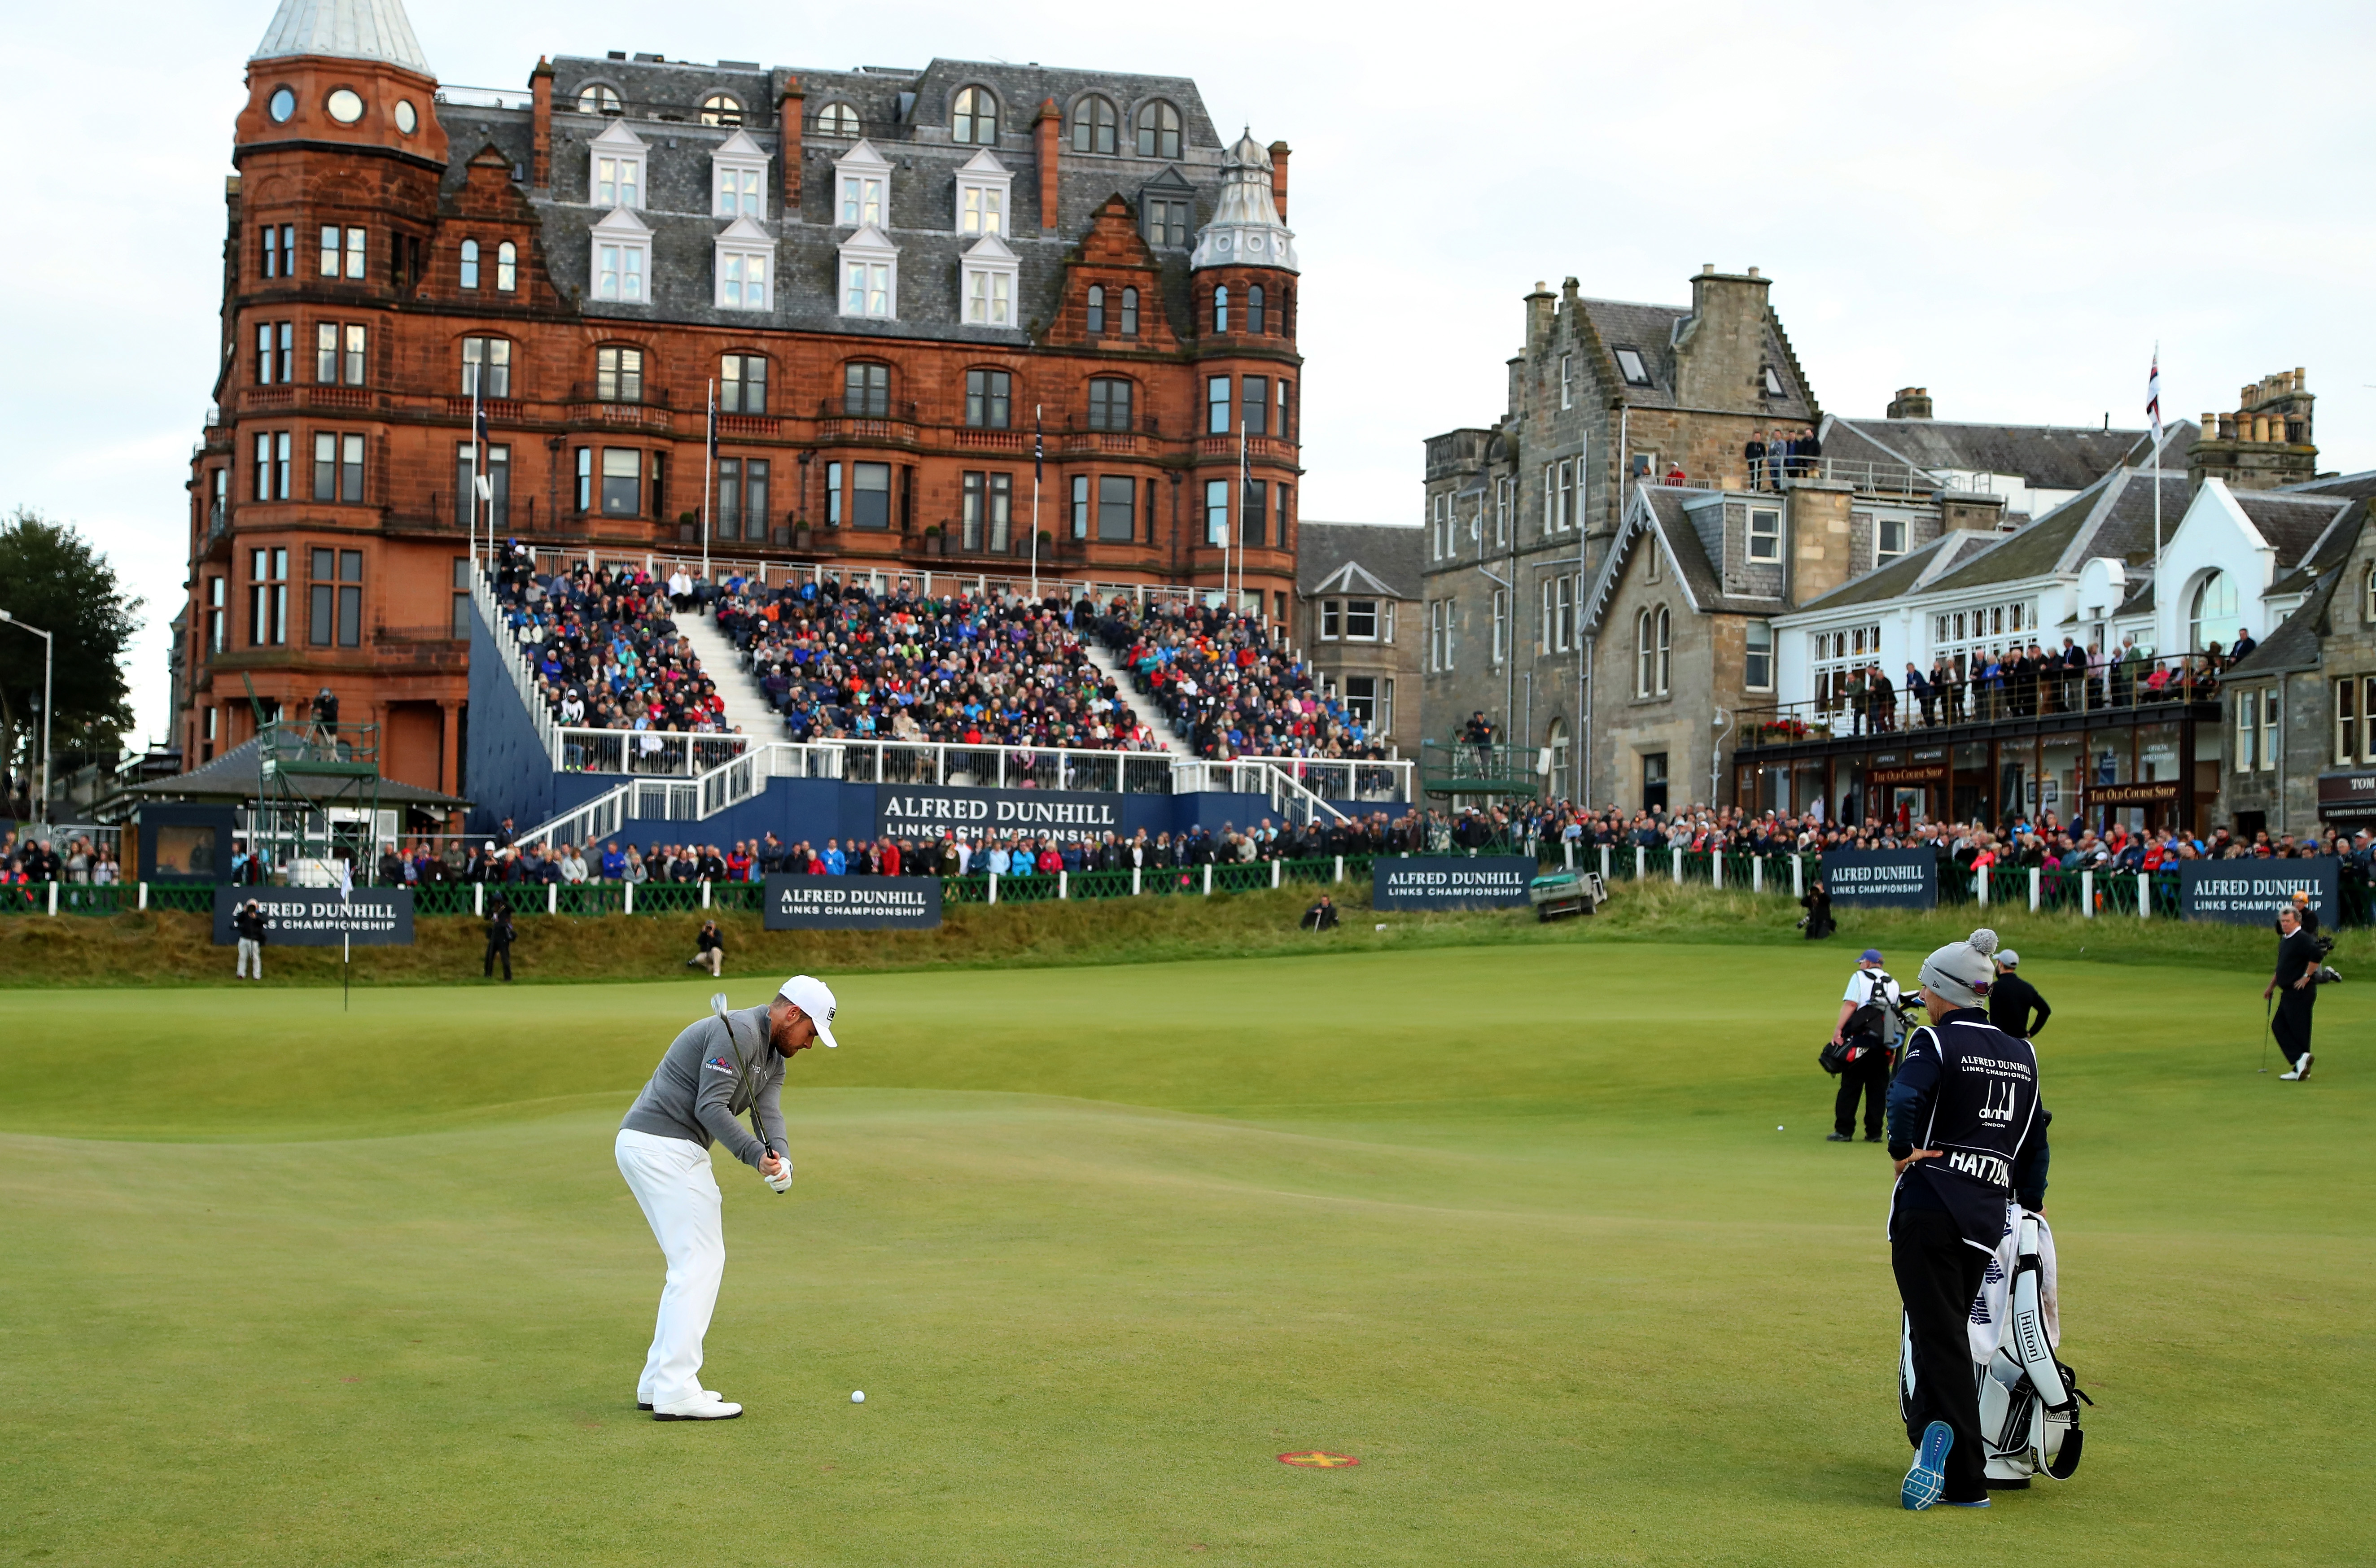 McIlroy seeks to end barren spell at Dunhill Links